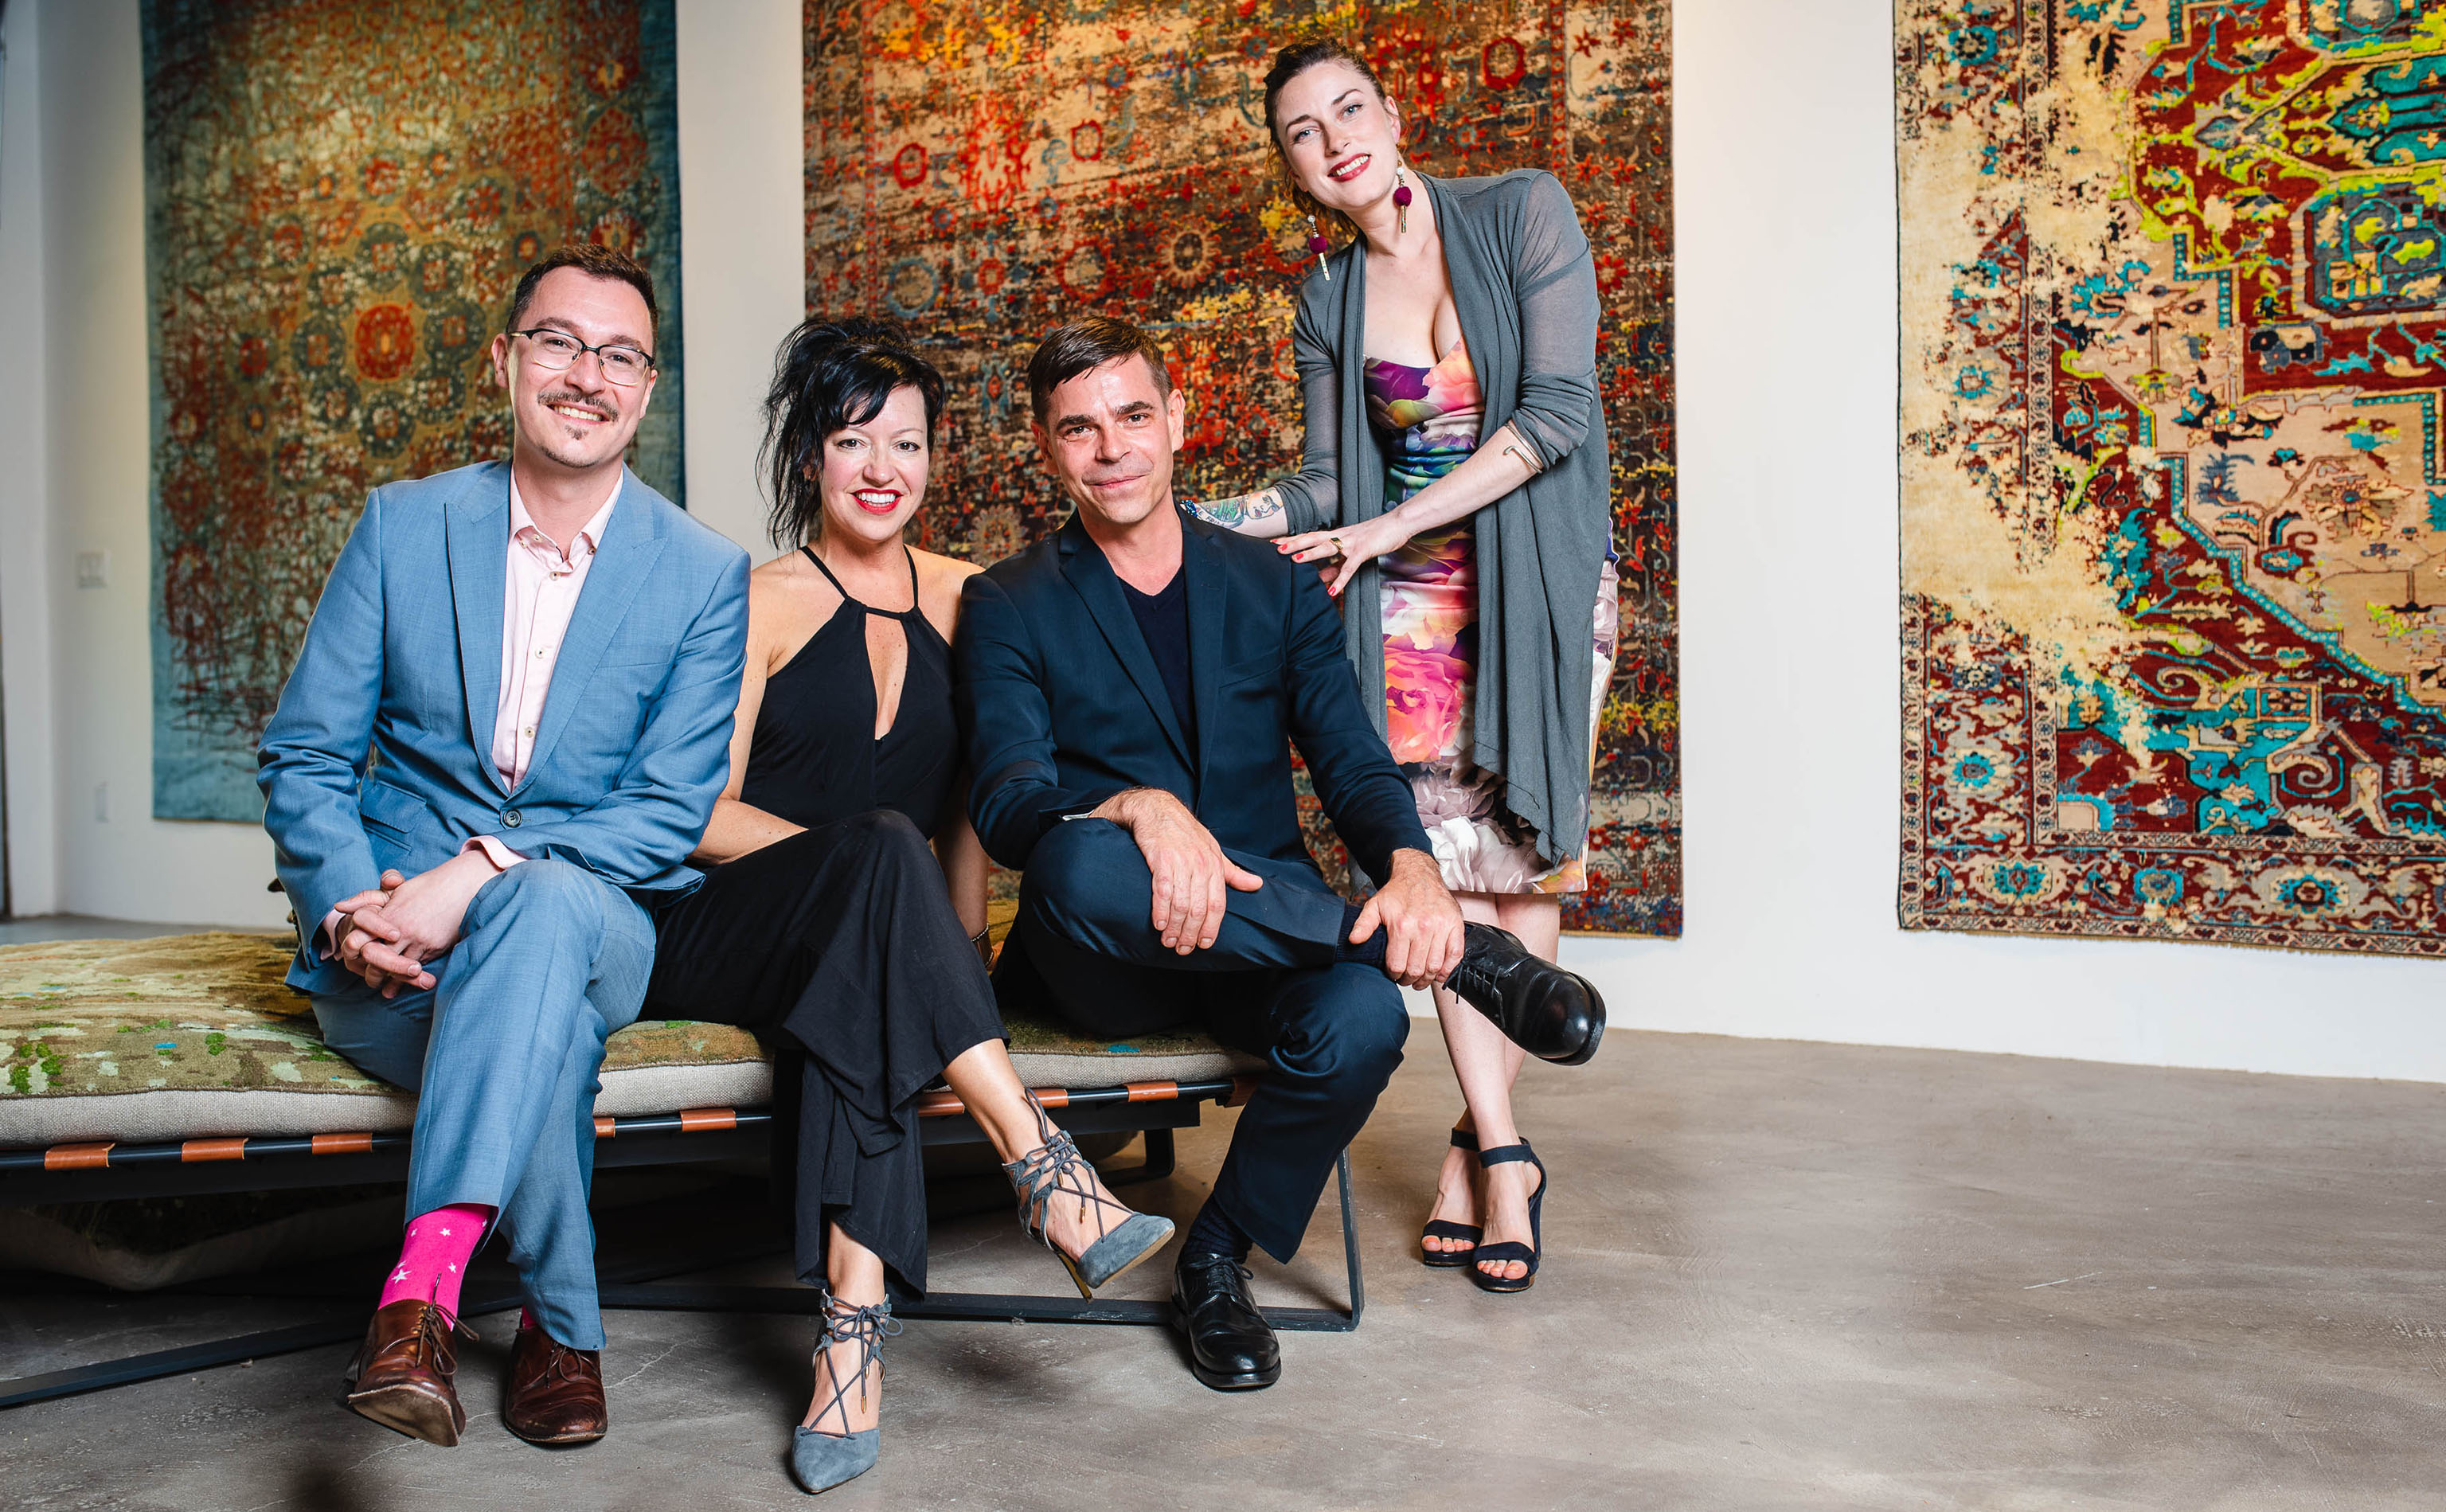 And this is why you hire a professional! Yvan Semenowycz, Jenni Finlay, Jan Kath, and Robyn Waffle (left ot right) shown properly poised in the official photograph shot by photographer Nancy Kim just as the opening party for Finlay and Kath's new Jan Kath Toronto showroom got underway on Thursday, 10 May 2018. | Image courtesy of Finlay and Kath.